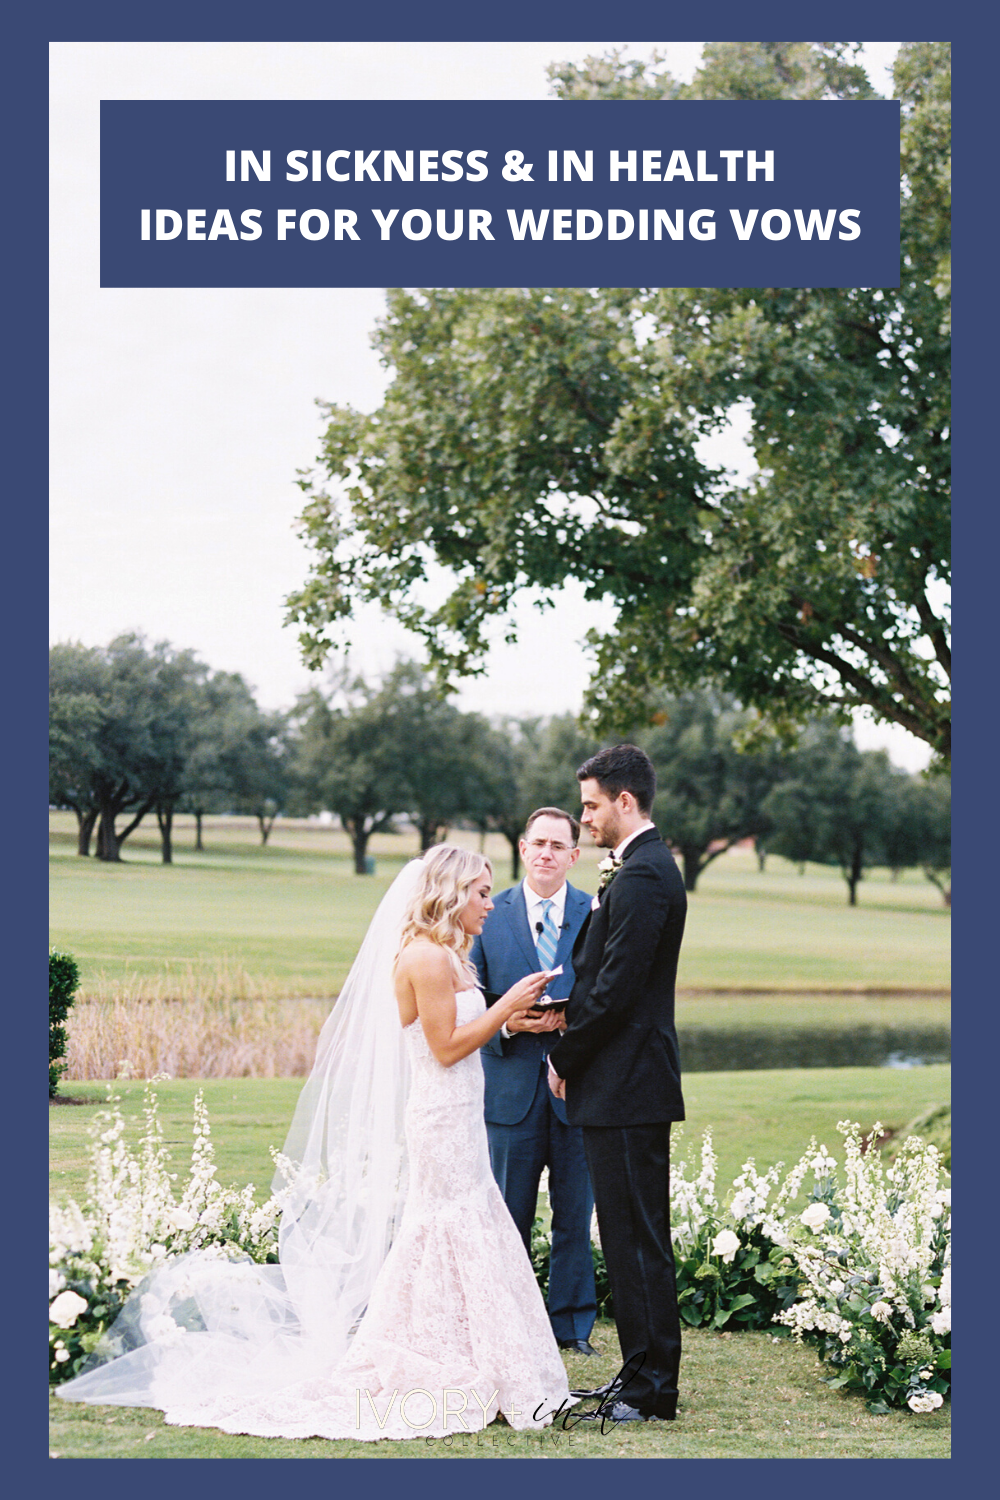 In Sickness & In health - ideas for your wedding vows - originally published on ivoryandink.com